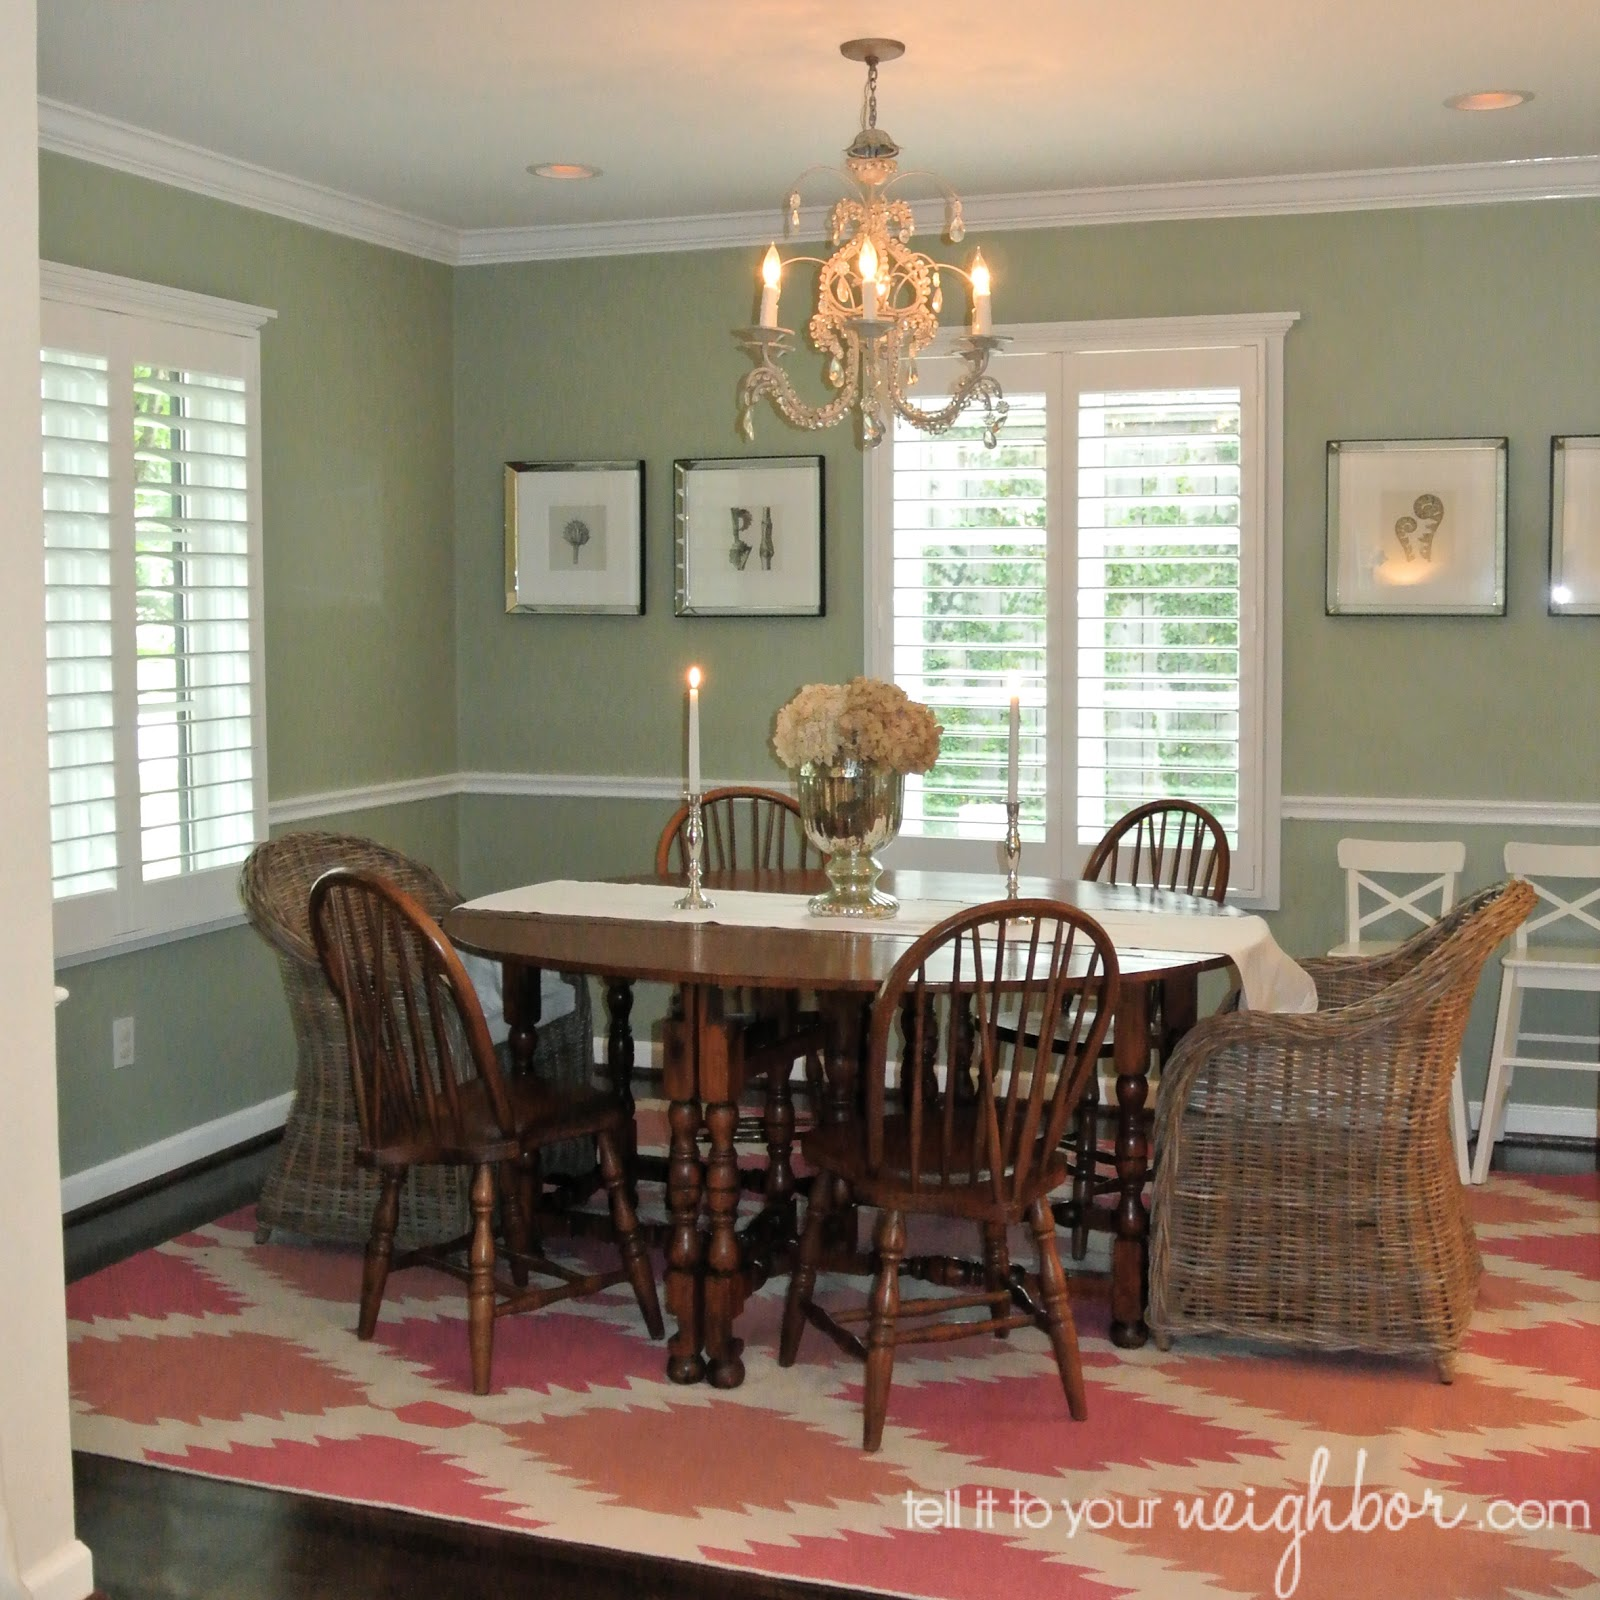 Tell it to your neighbor dining room rug for Dining room rugs